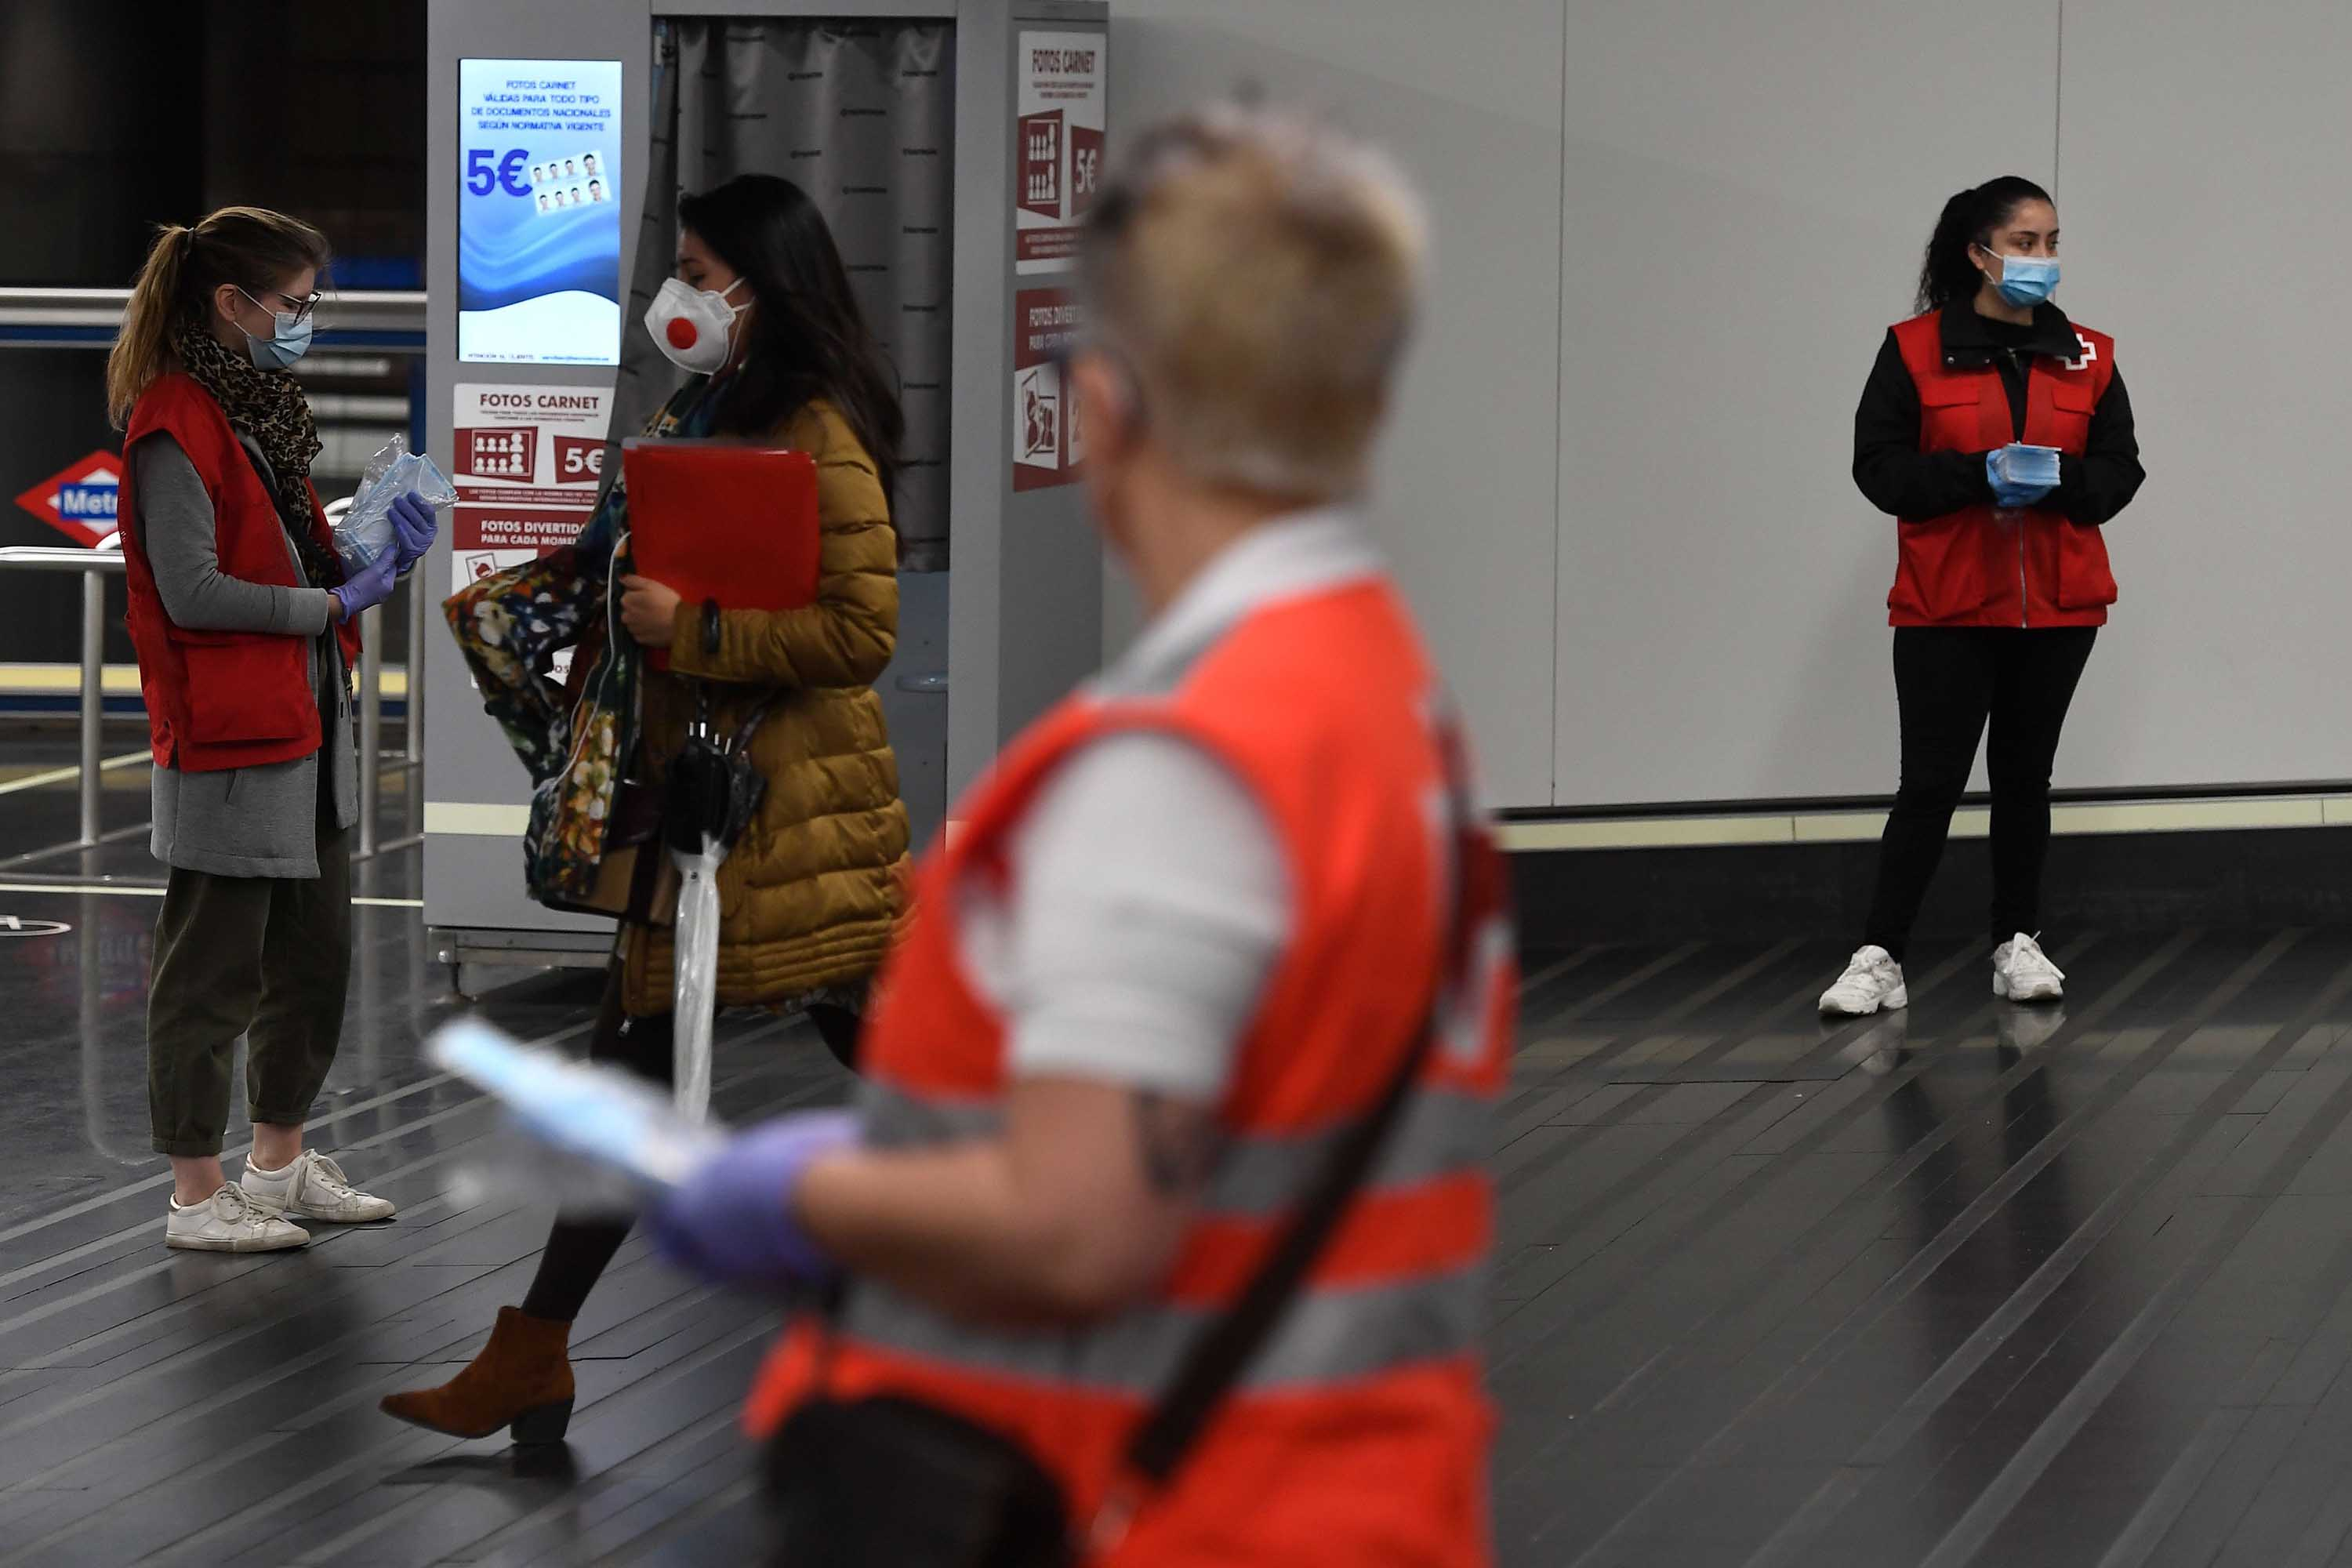 Spanish Red Cross volunteers distribute face masks at the Chamartin Station in Madrid on April 13. Some companies are set to resume operations after the government lifted some of the country's lockdown restrictions.